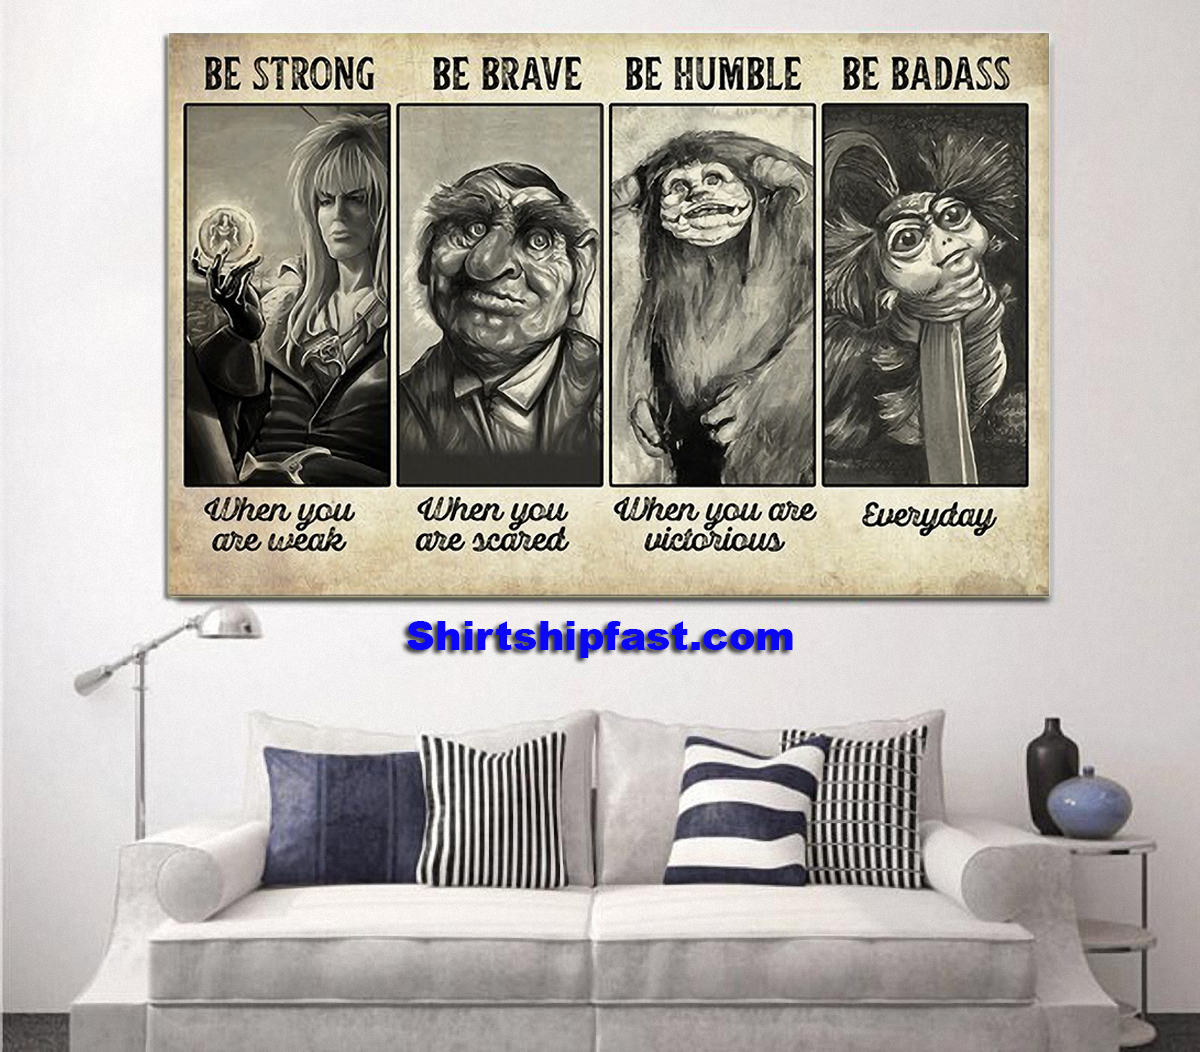 Be strong be brave be humble be badass supernatural creature poster - Picture 1